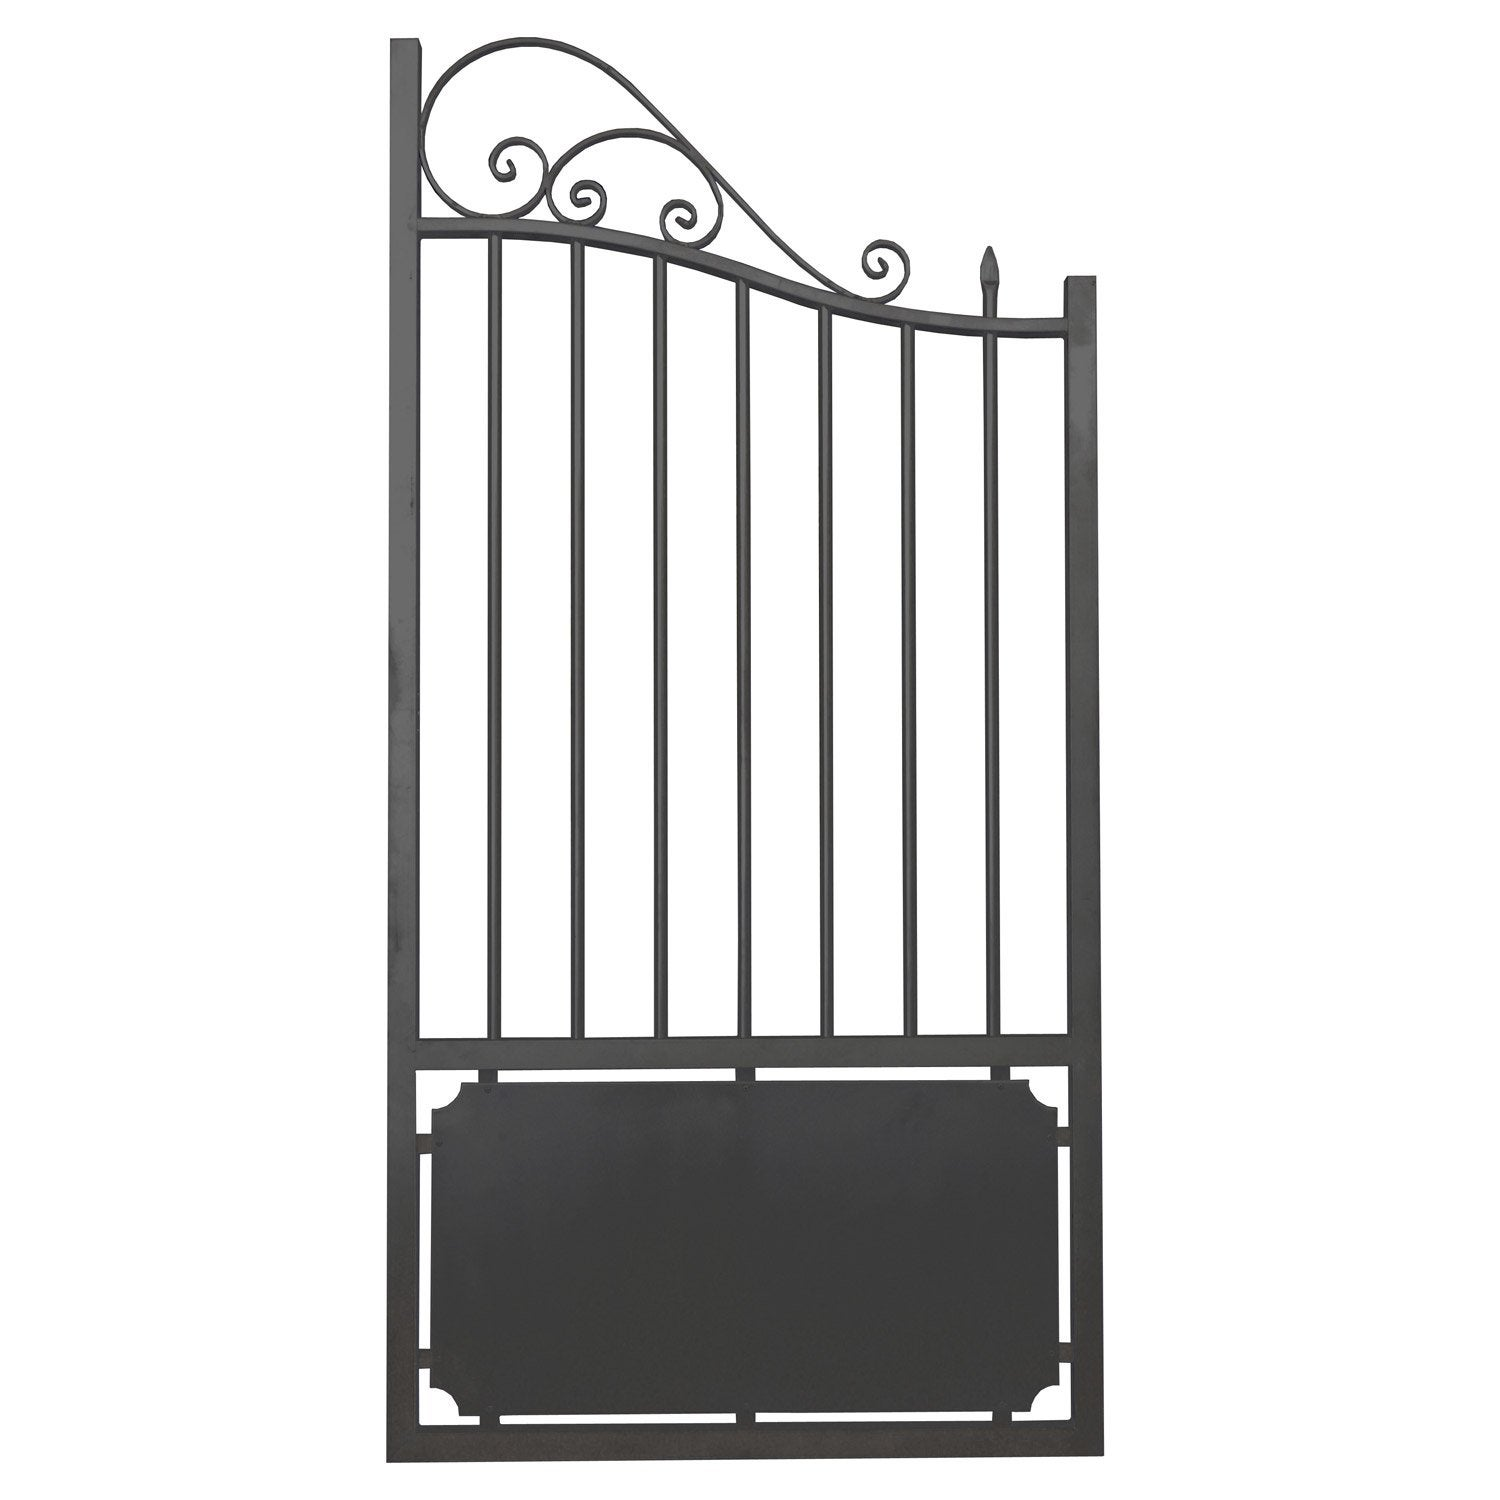 Portillon battant en aluminium matignon x cm leroy merlin - Portillon double battant ...